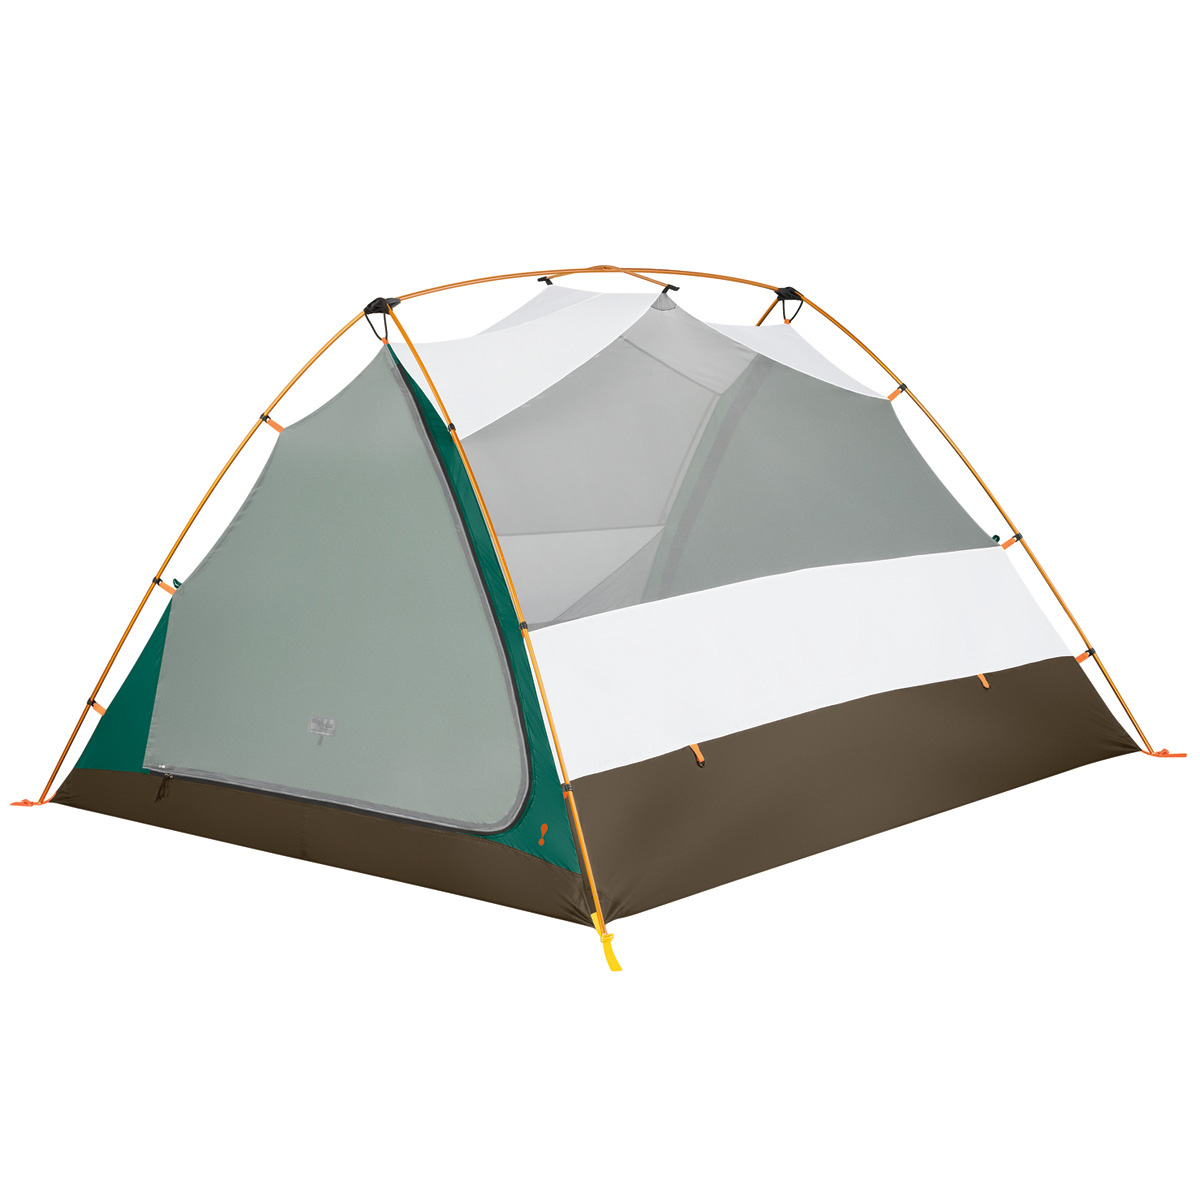 Timberline® SQ 4XT 4 Person Tent  sc 1 st  Tents | Eureka! - Johnson Outdoors & Timberline® 4 Person Tent | Eureka!